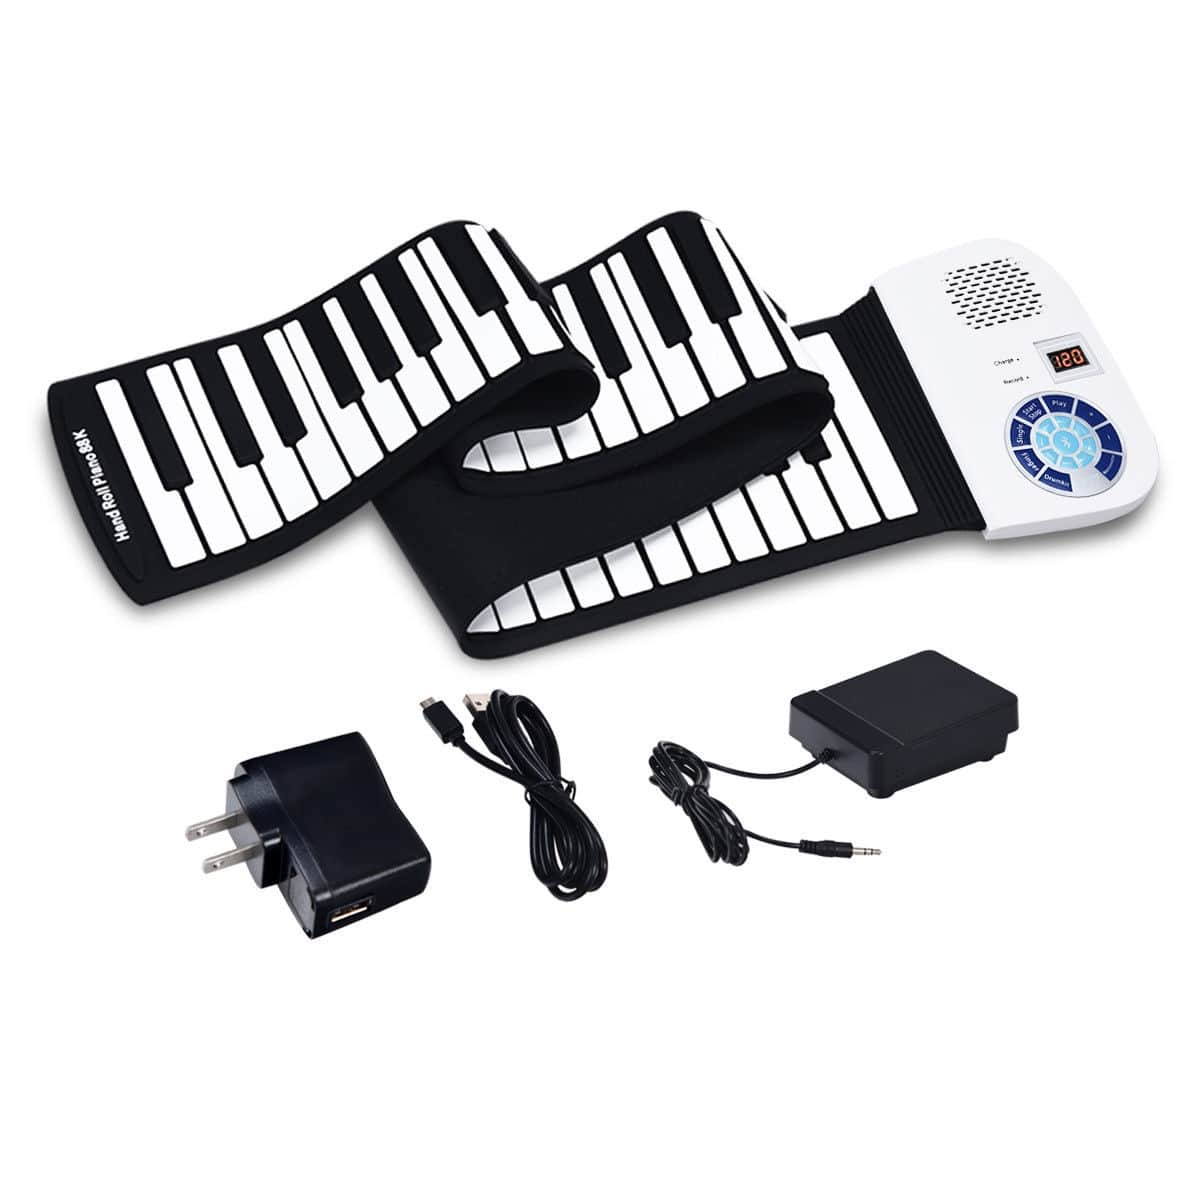 Costway: 88 Keys Midi Electronic Roll up Piano Silicone Keyboard for $48 + Free Shipping.